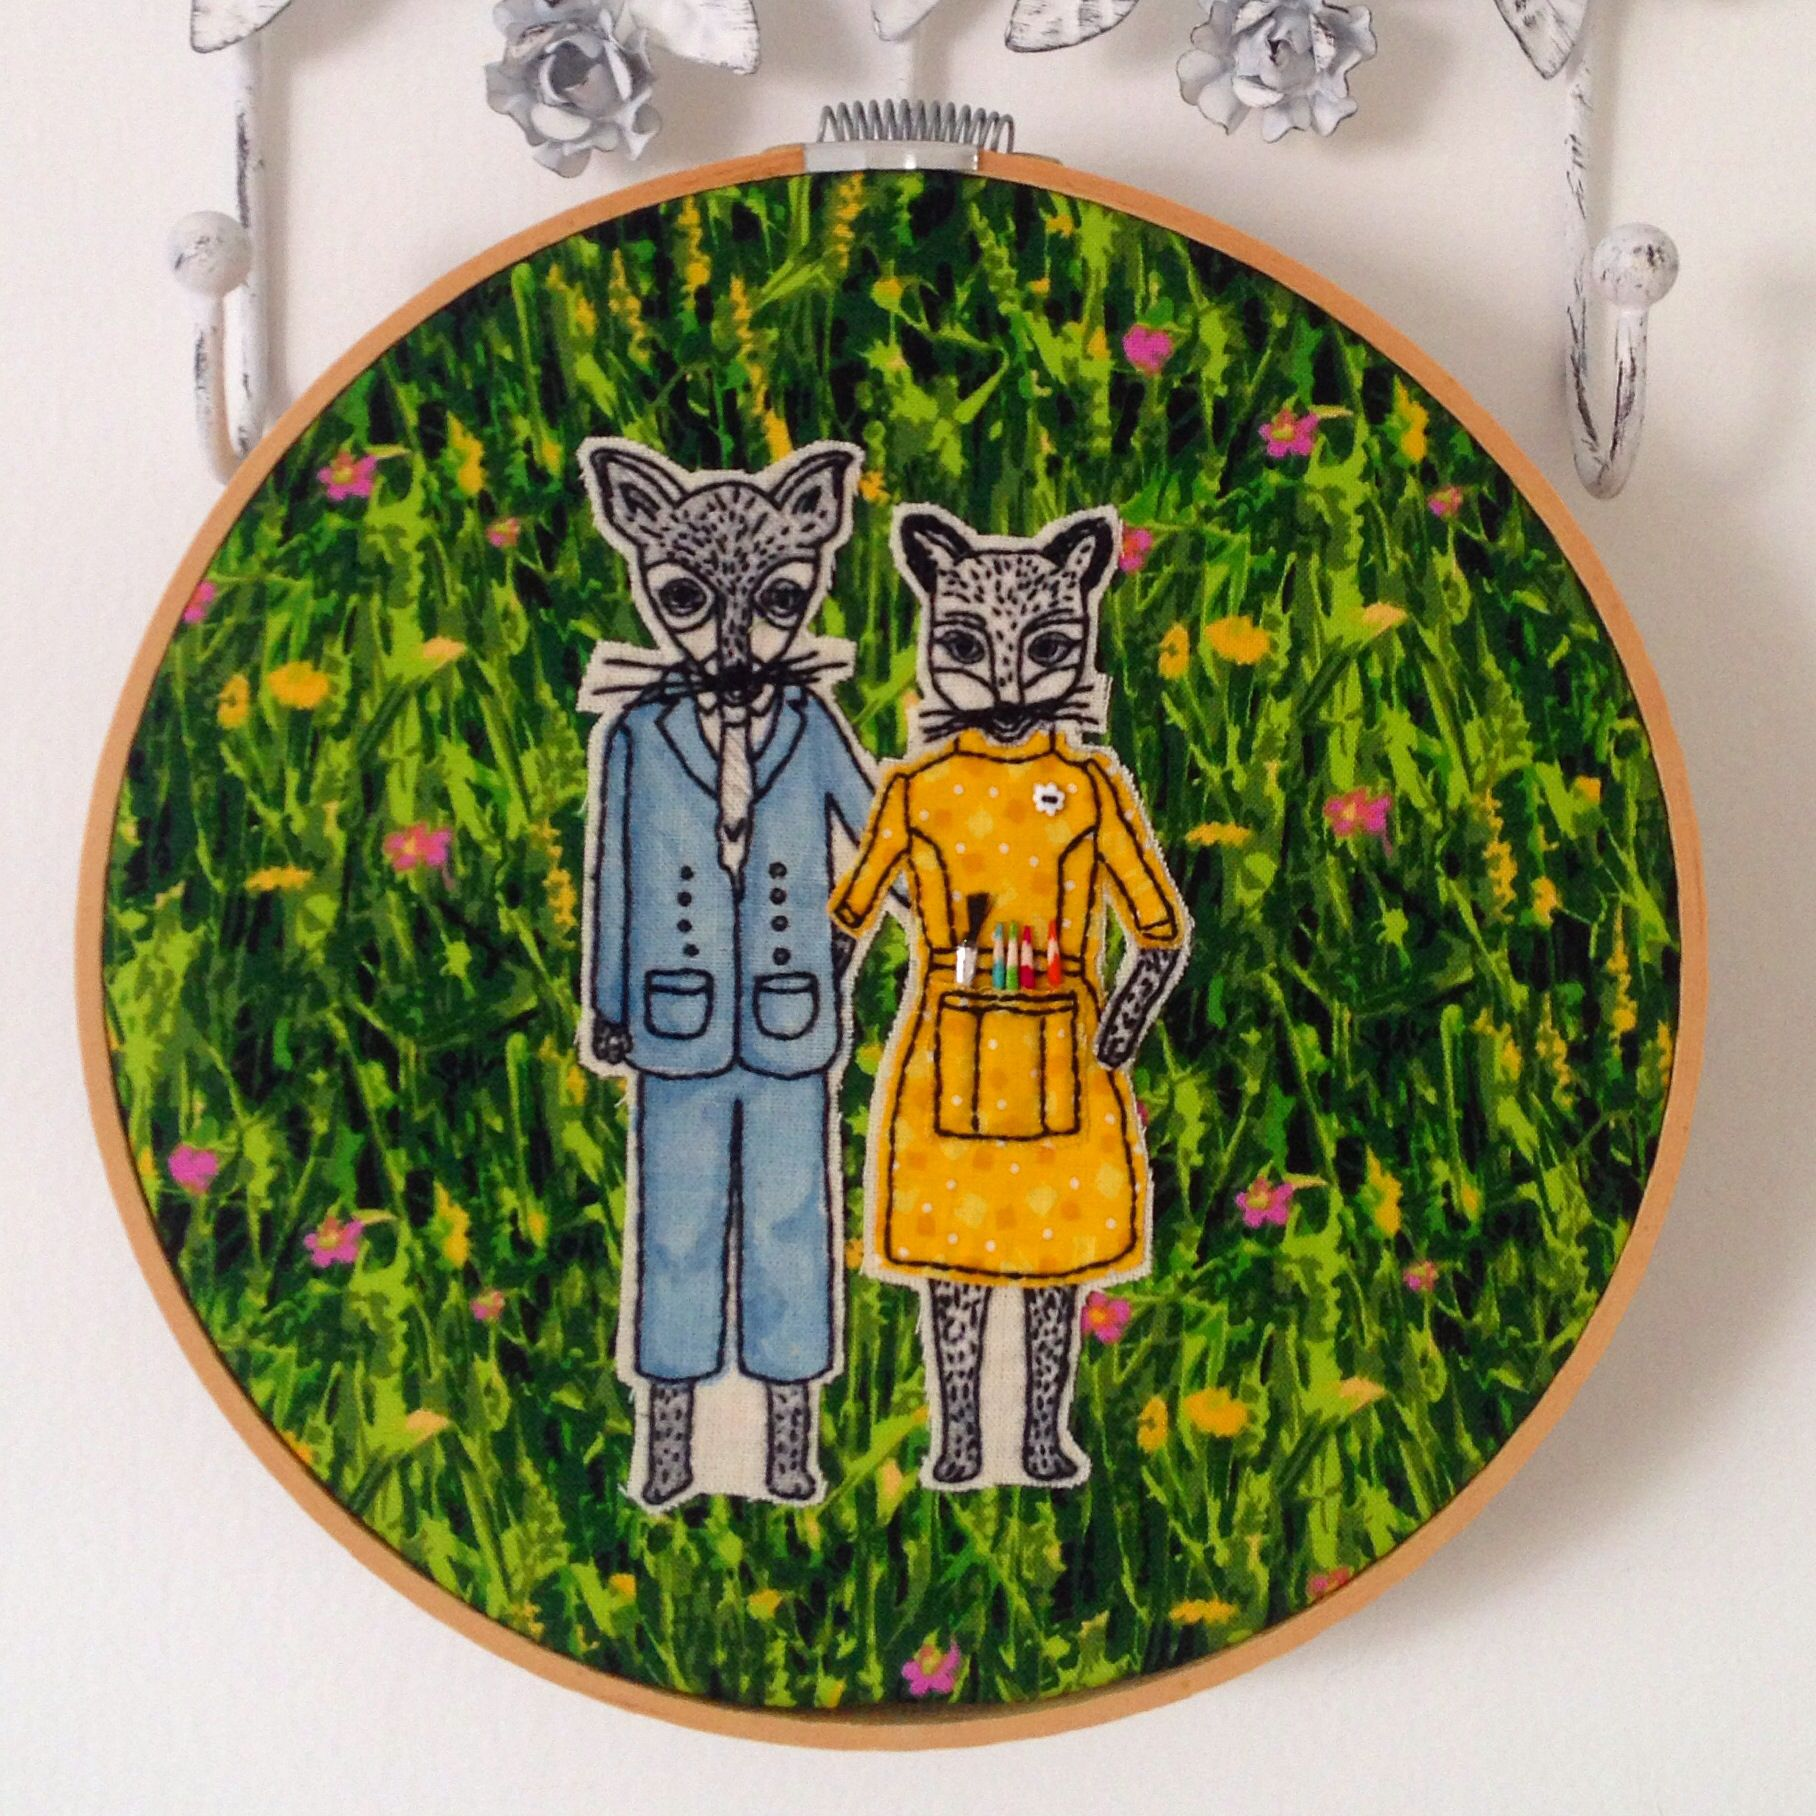 Fantastic Mr. Fox. Embroidery by me.